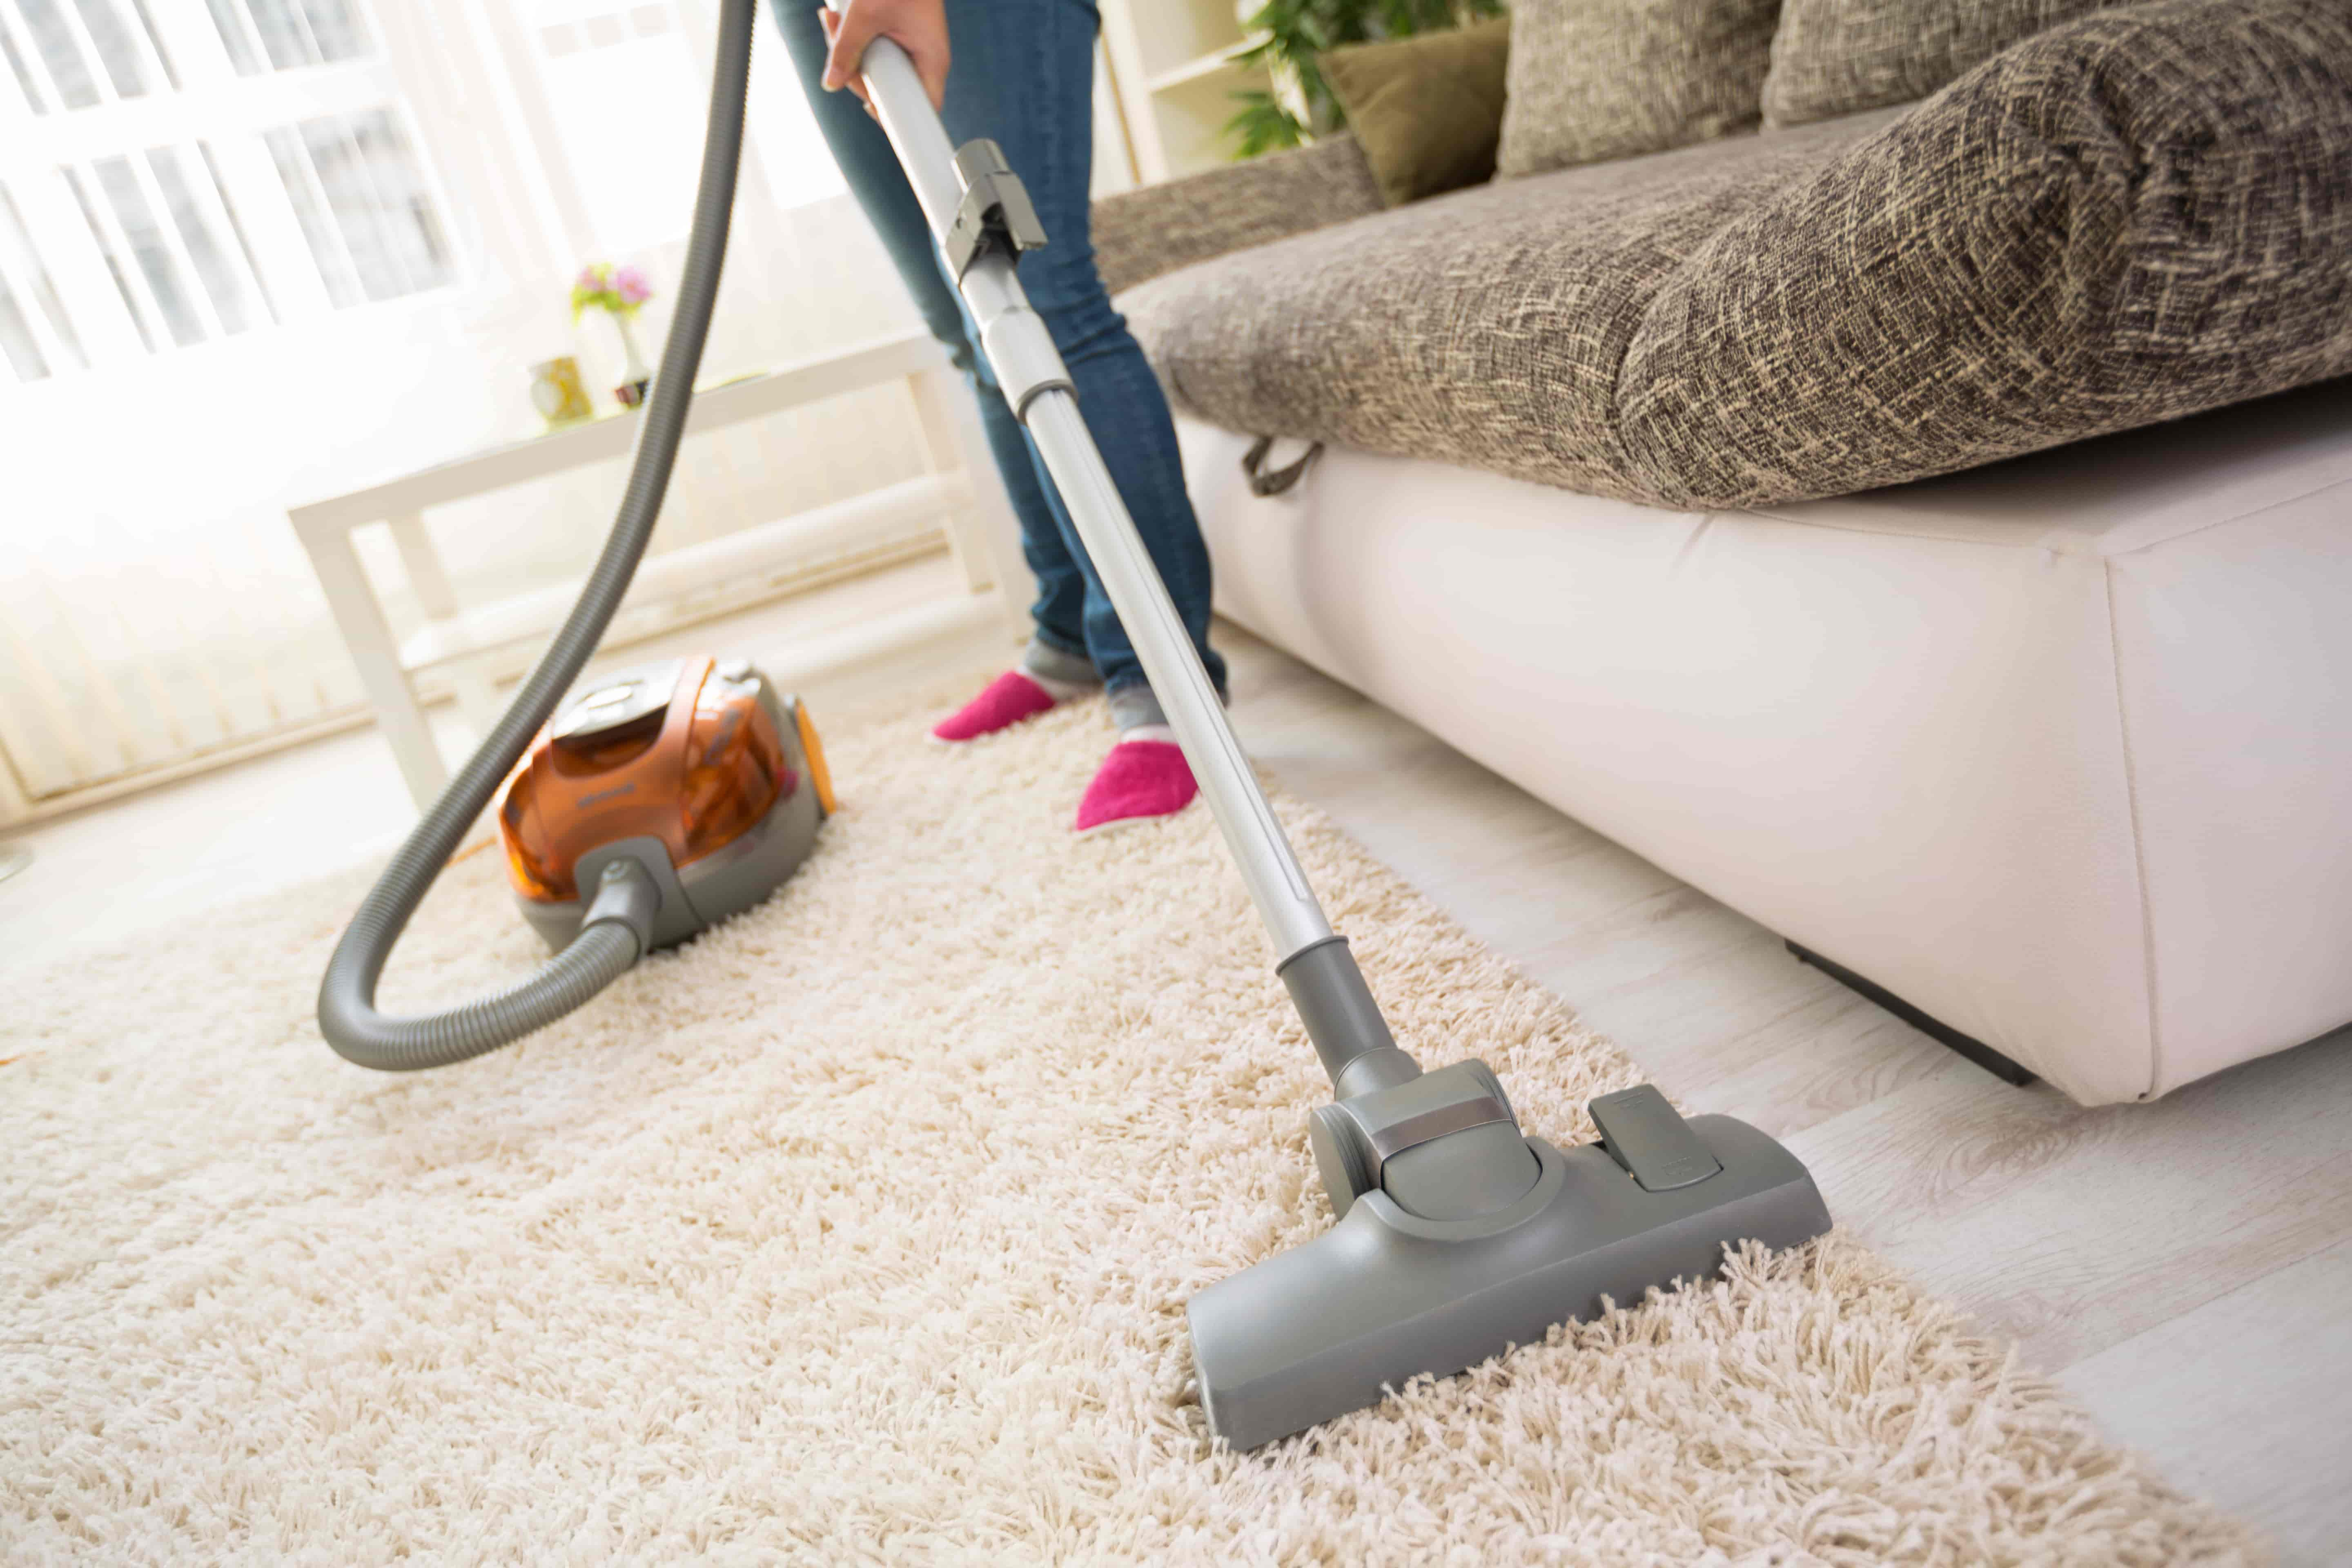 We clean the carpet at home 72